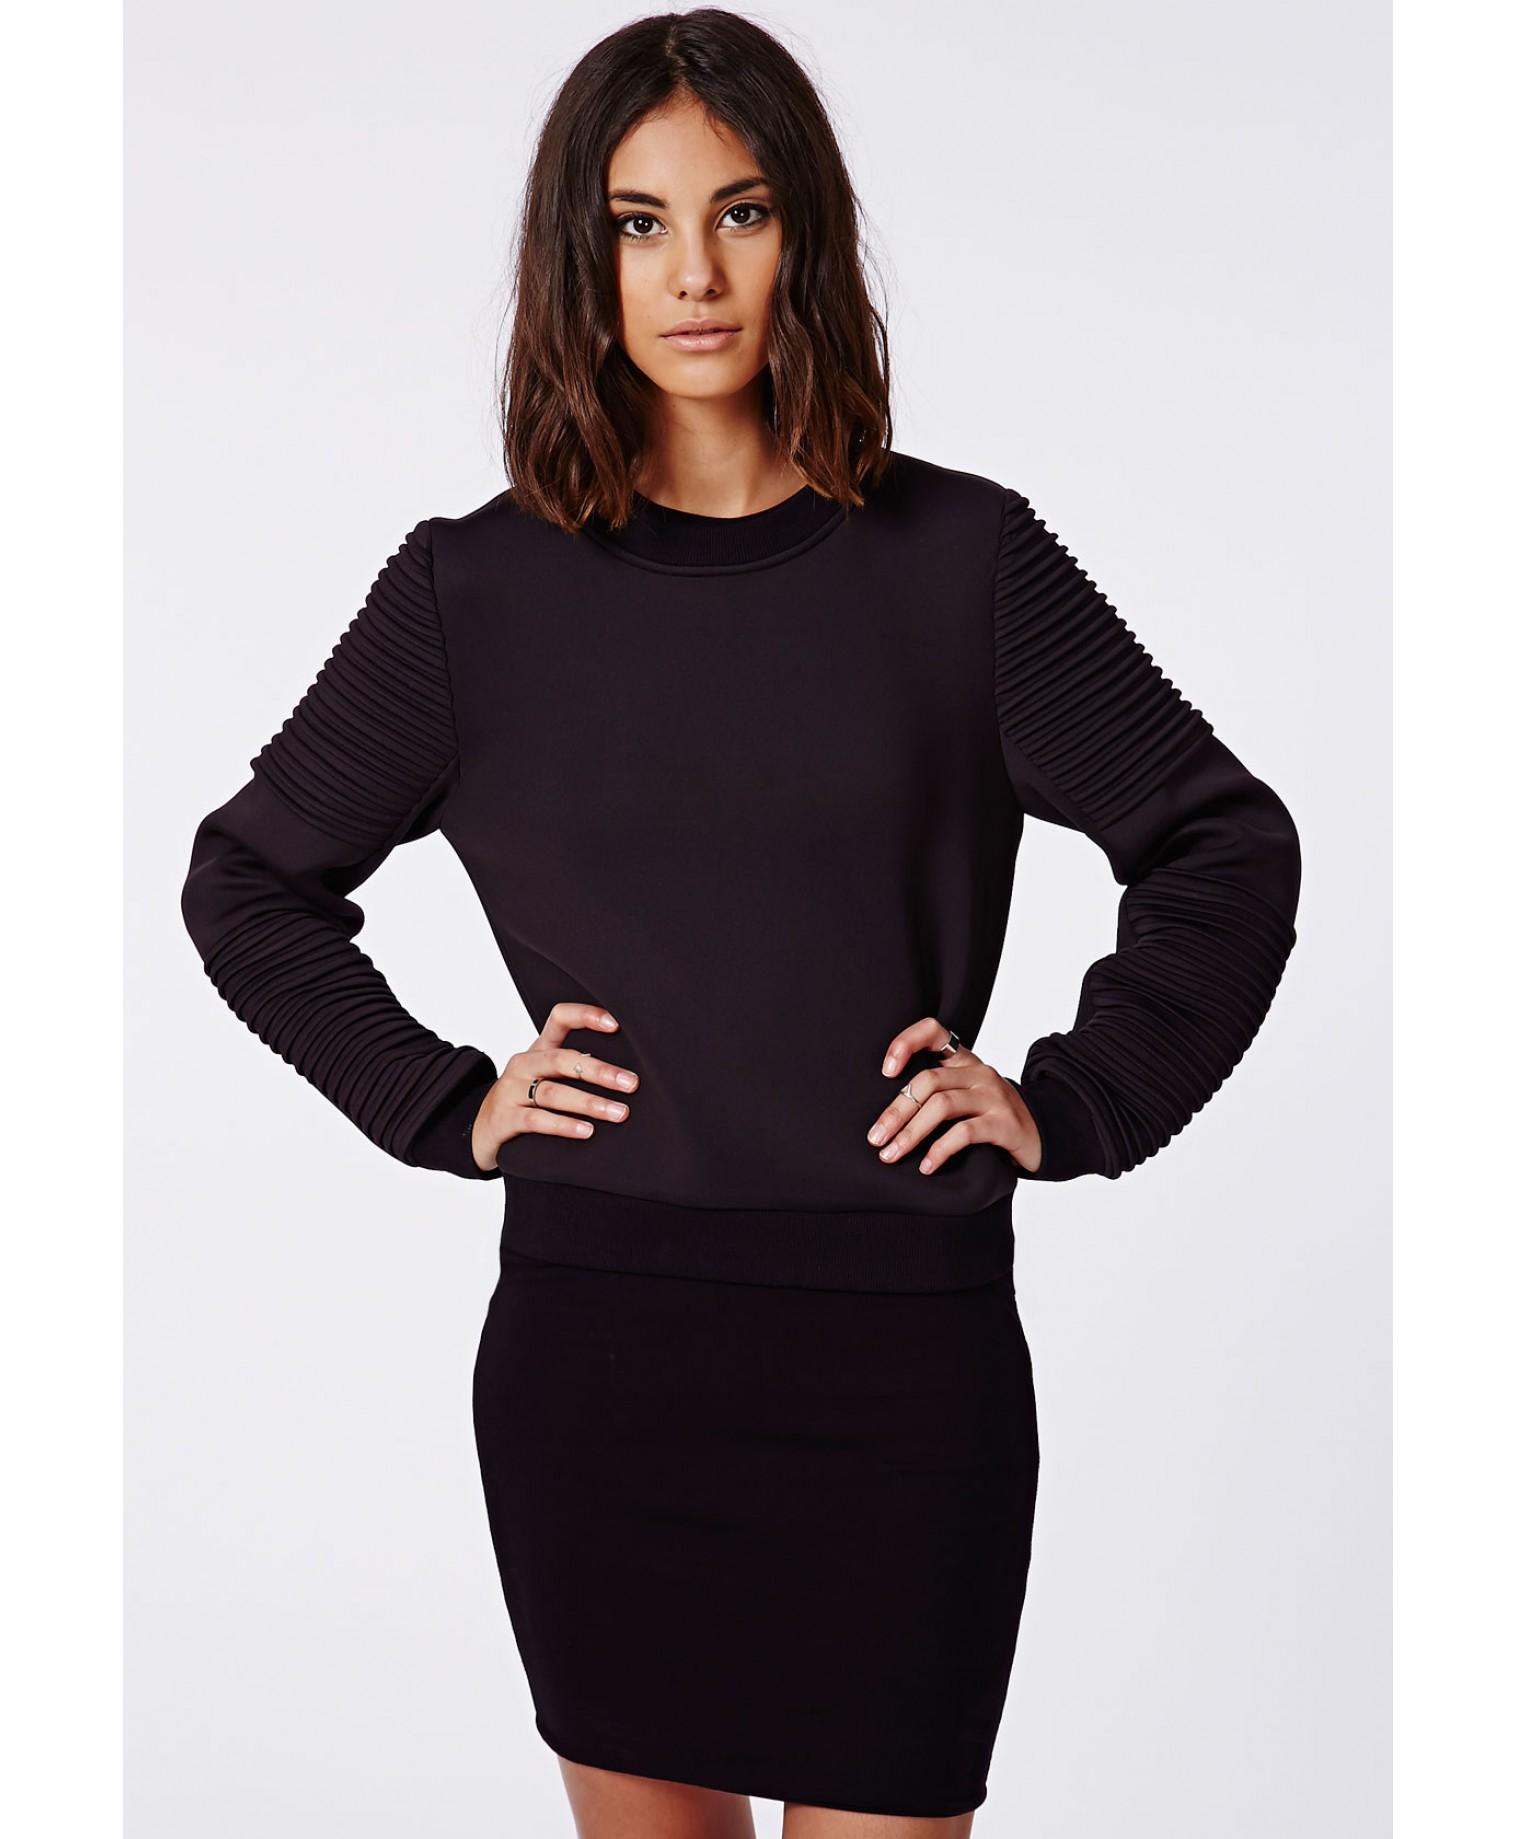 Missguided - Nicole X Biker Sleeve Neoprene Sweatshirt Black